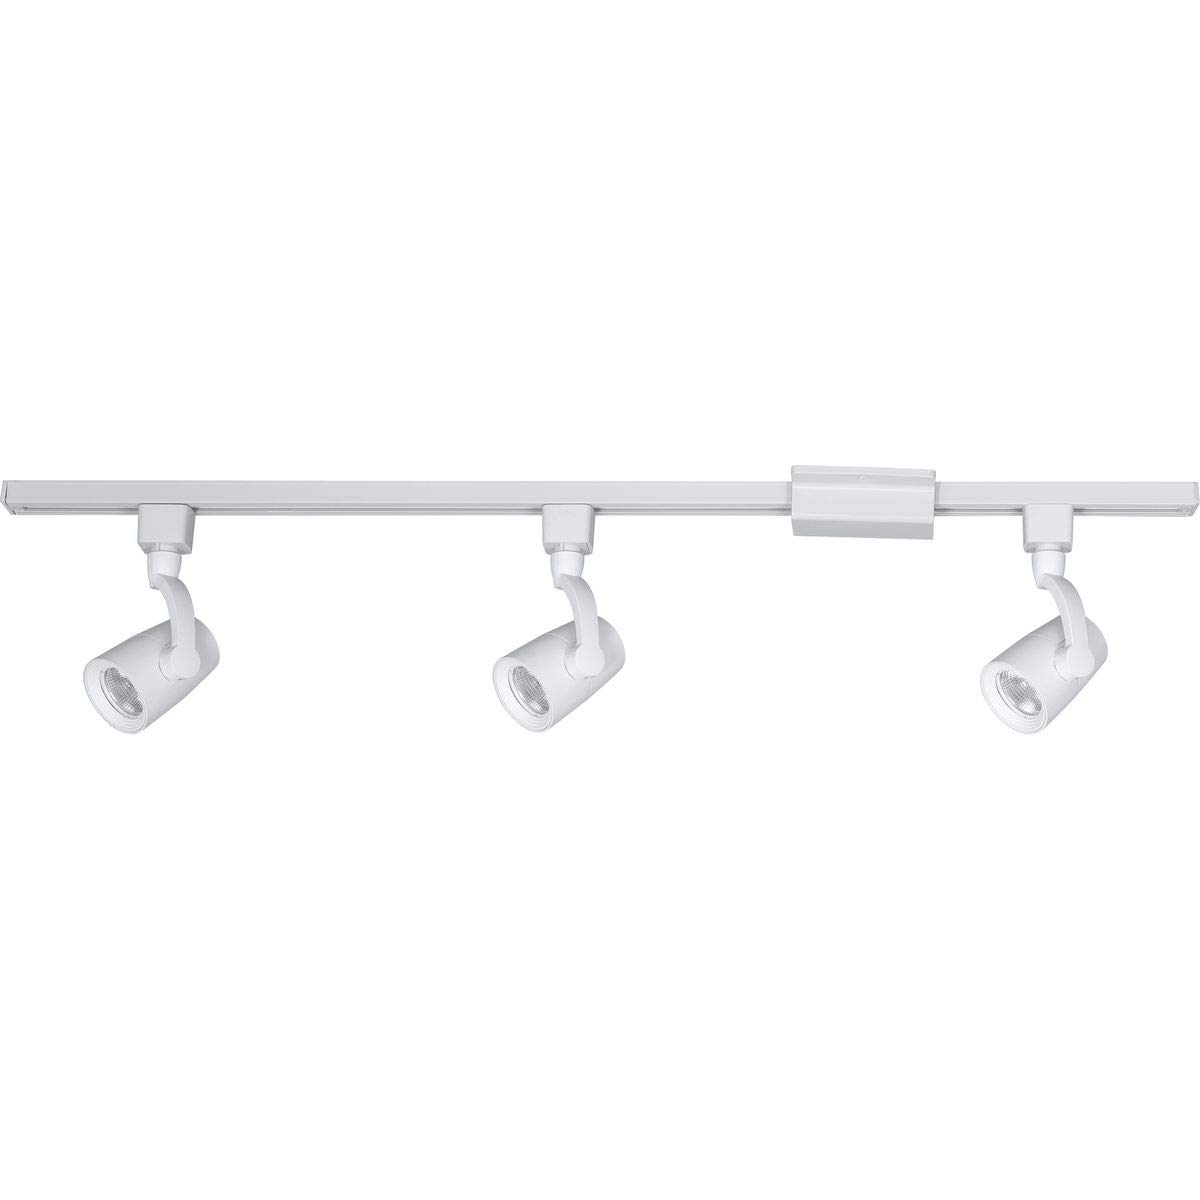 Progress Lighting P900008-028-27 LED Three-Light Track Kit, White